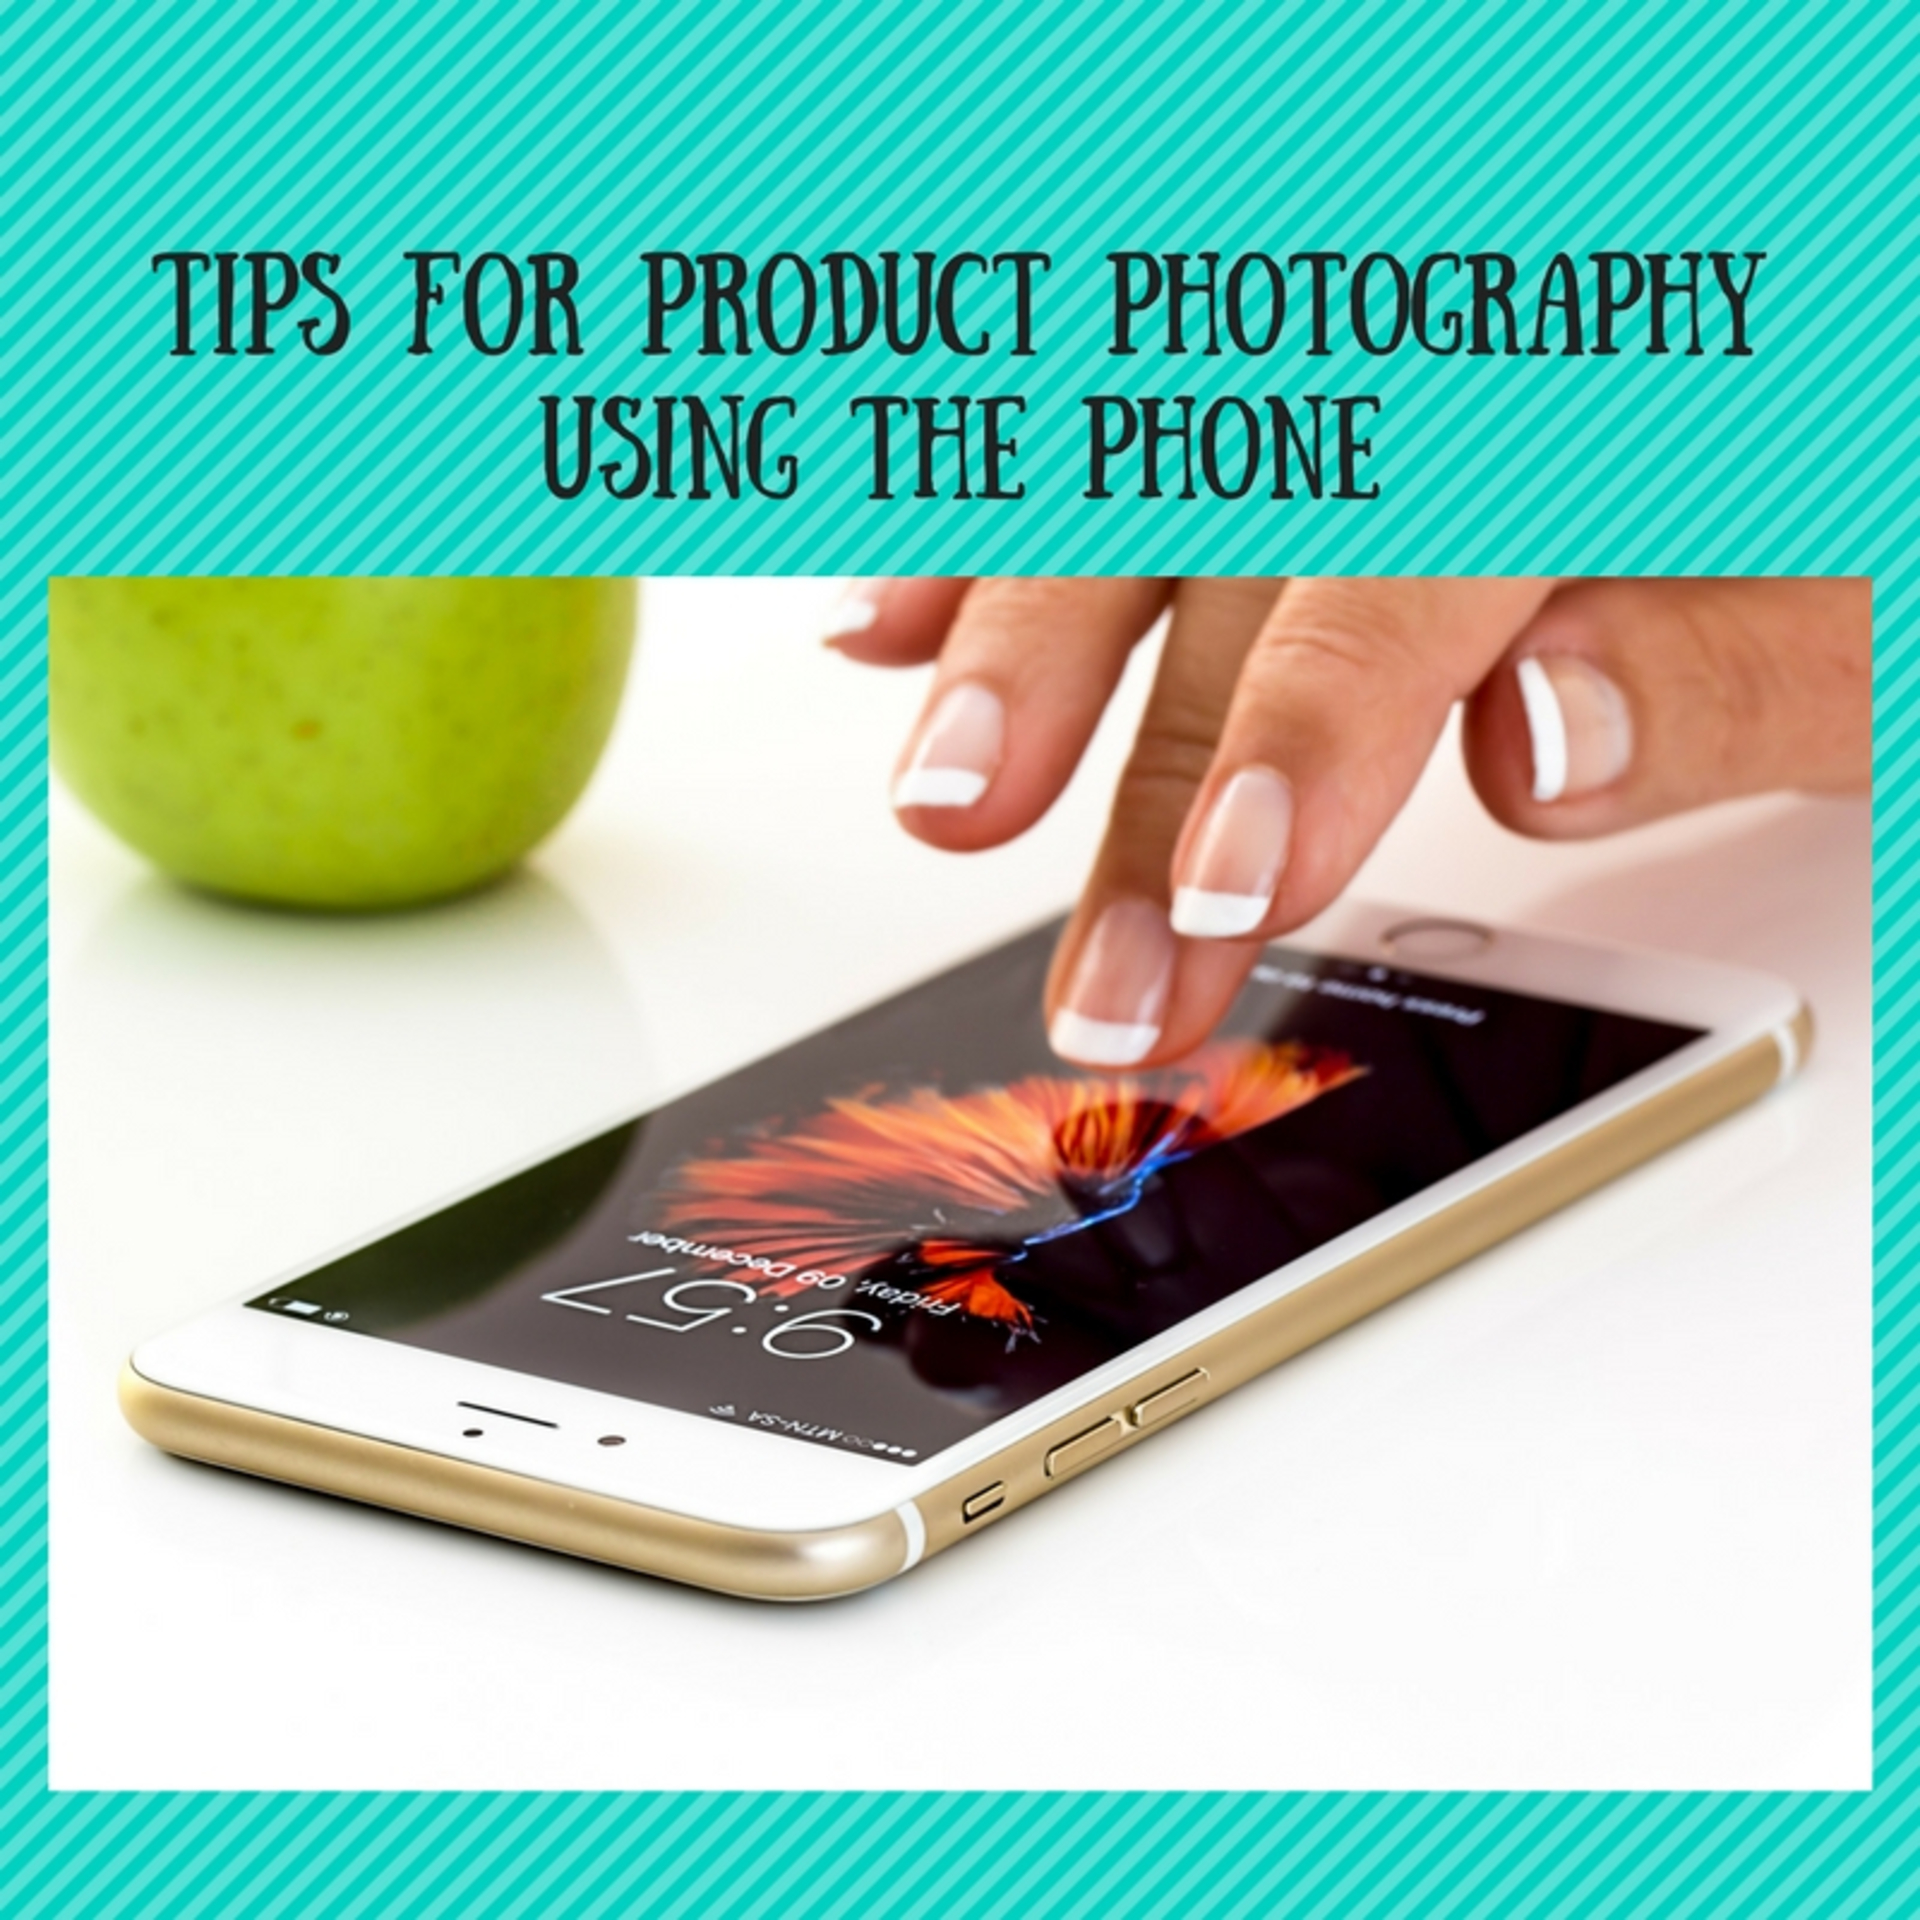 Tips for product photography using a phone image